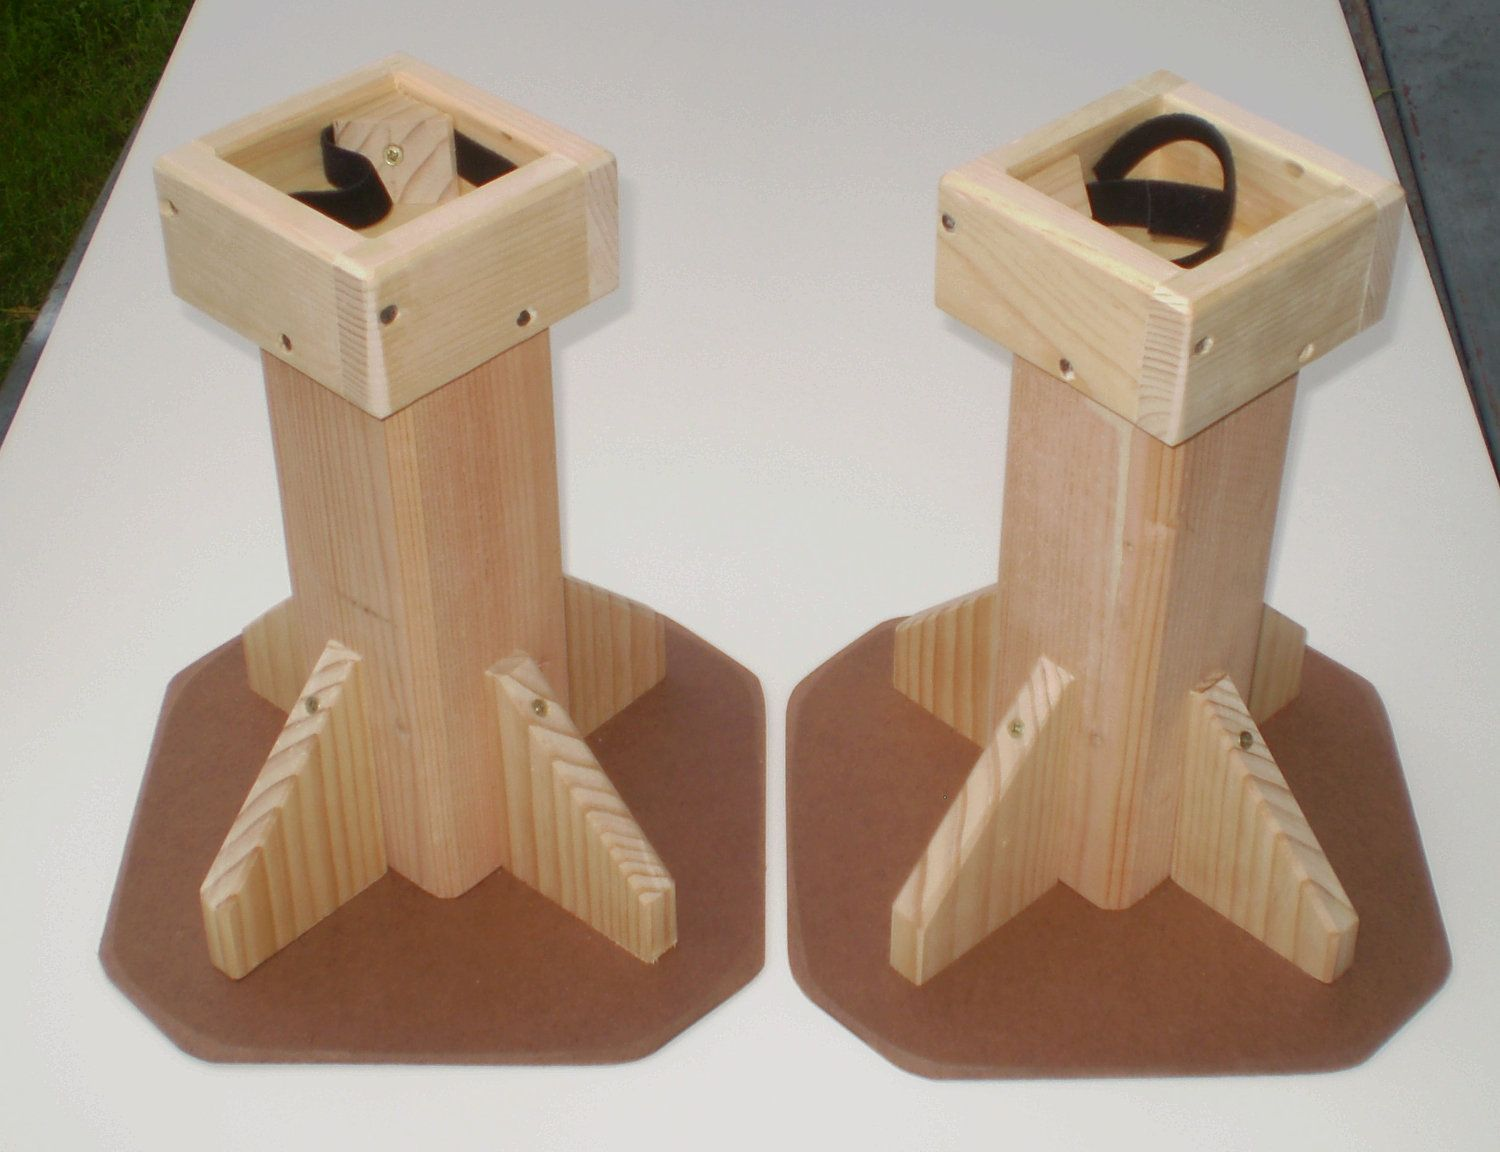 12 Inch Bed Risers All Wood Construction Unfinished Sold In